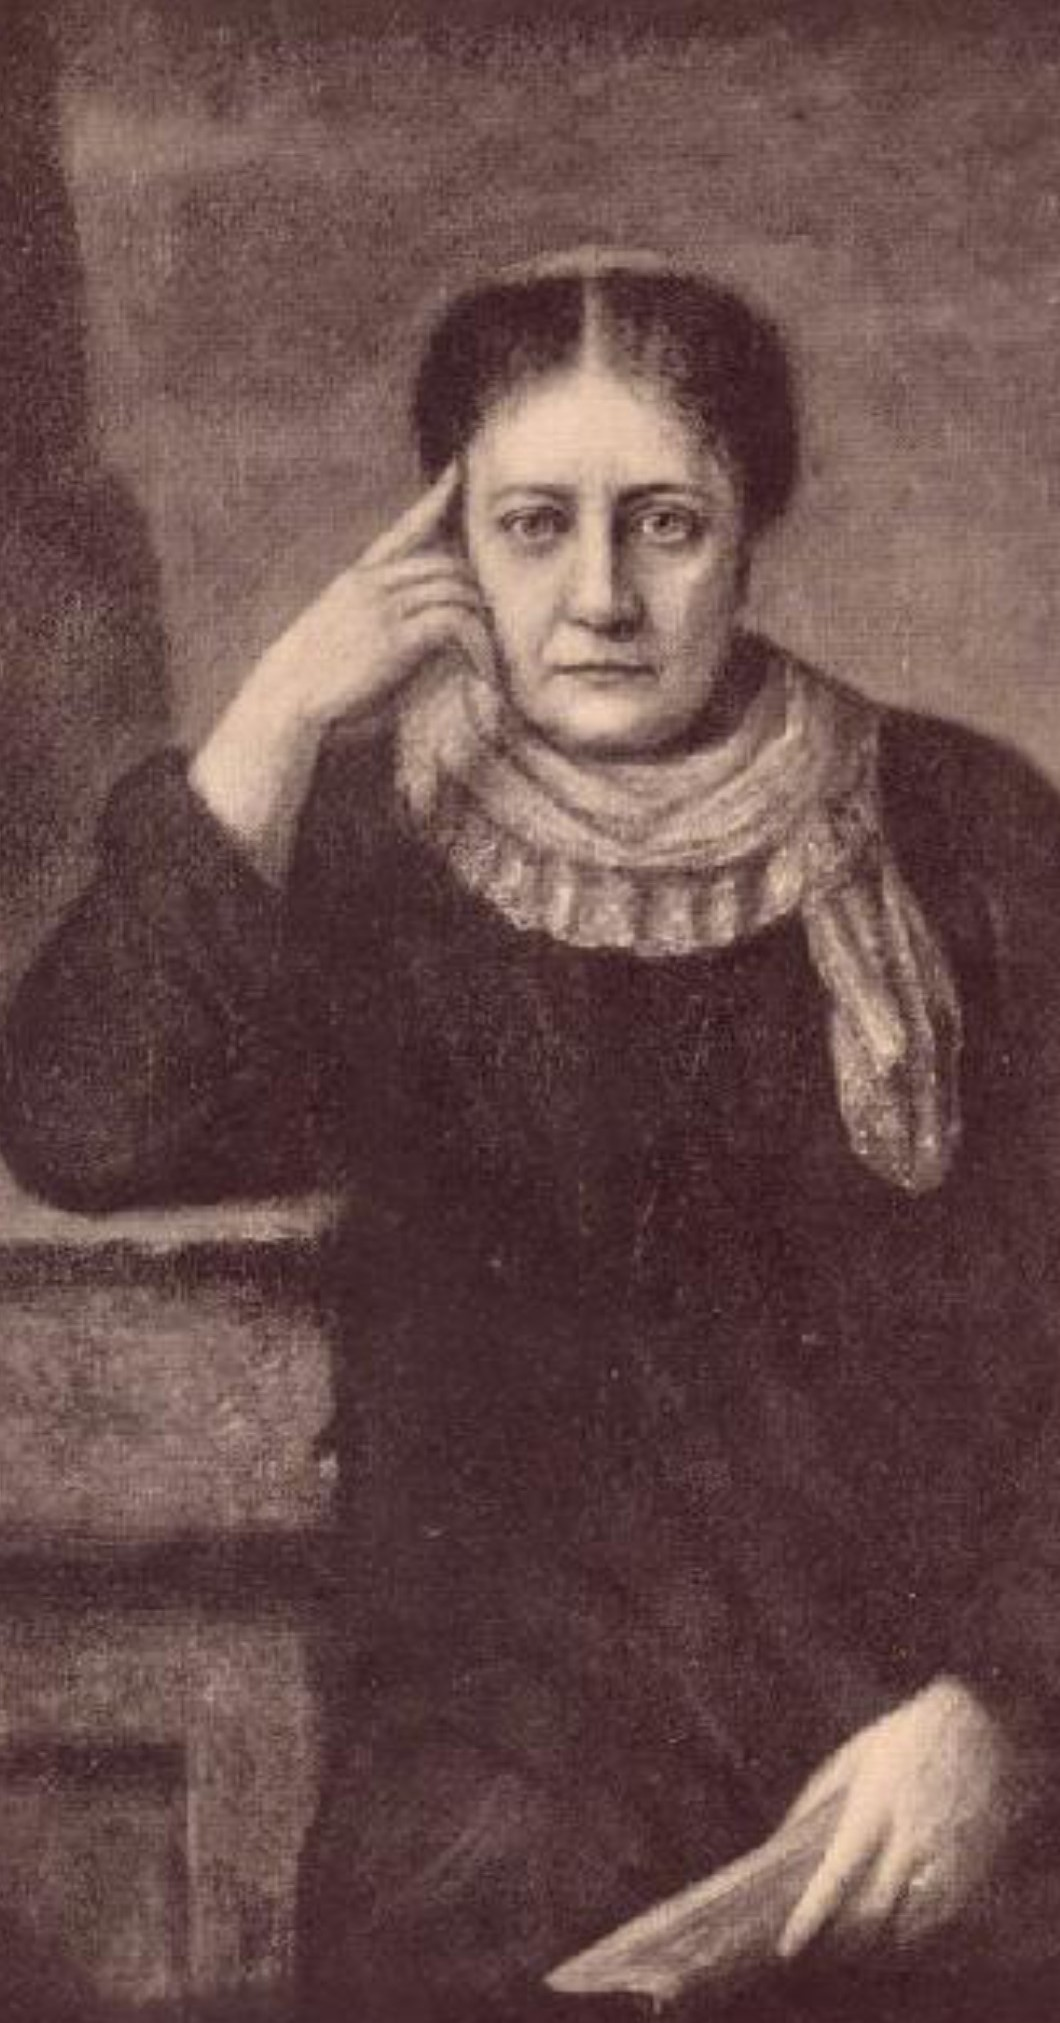 Click here to see more photos of H.P. Blavatsky